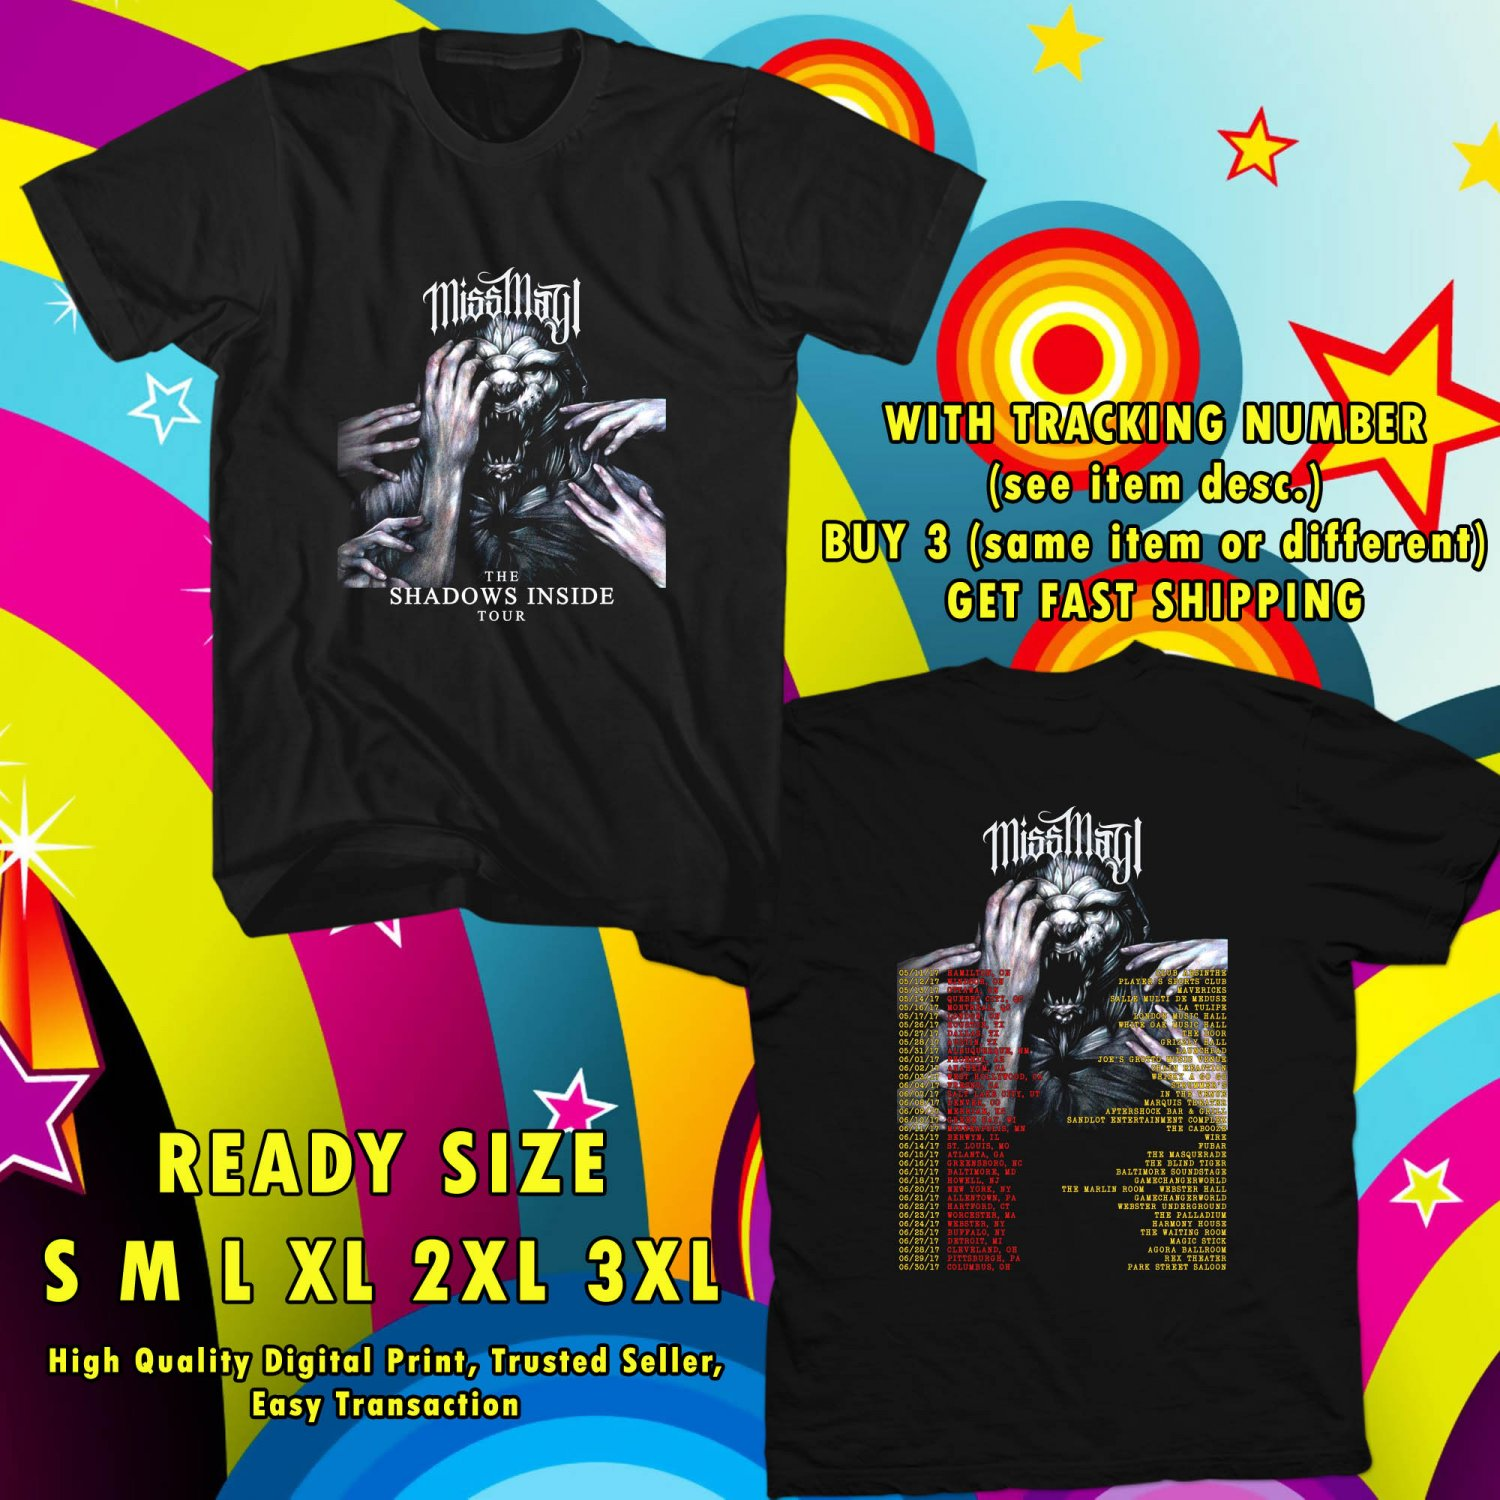 NEW MISS MAY I THE SHADOWS INSIDE TOUR 2017 BLACK TEE W DATES DMTR 544